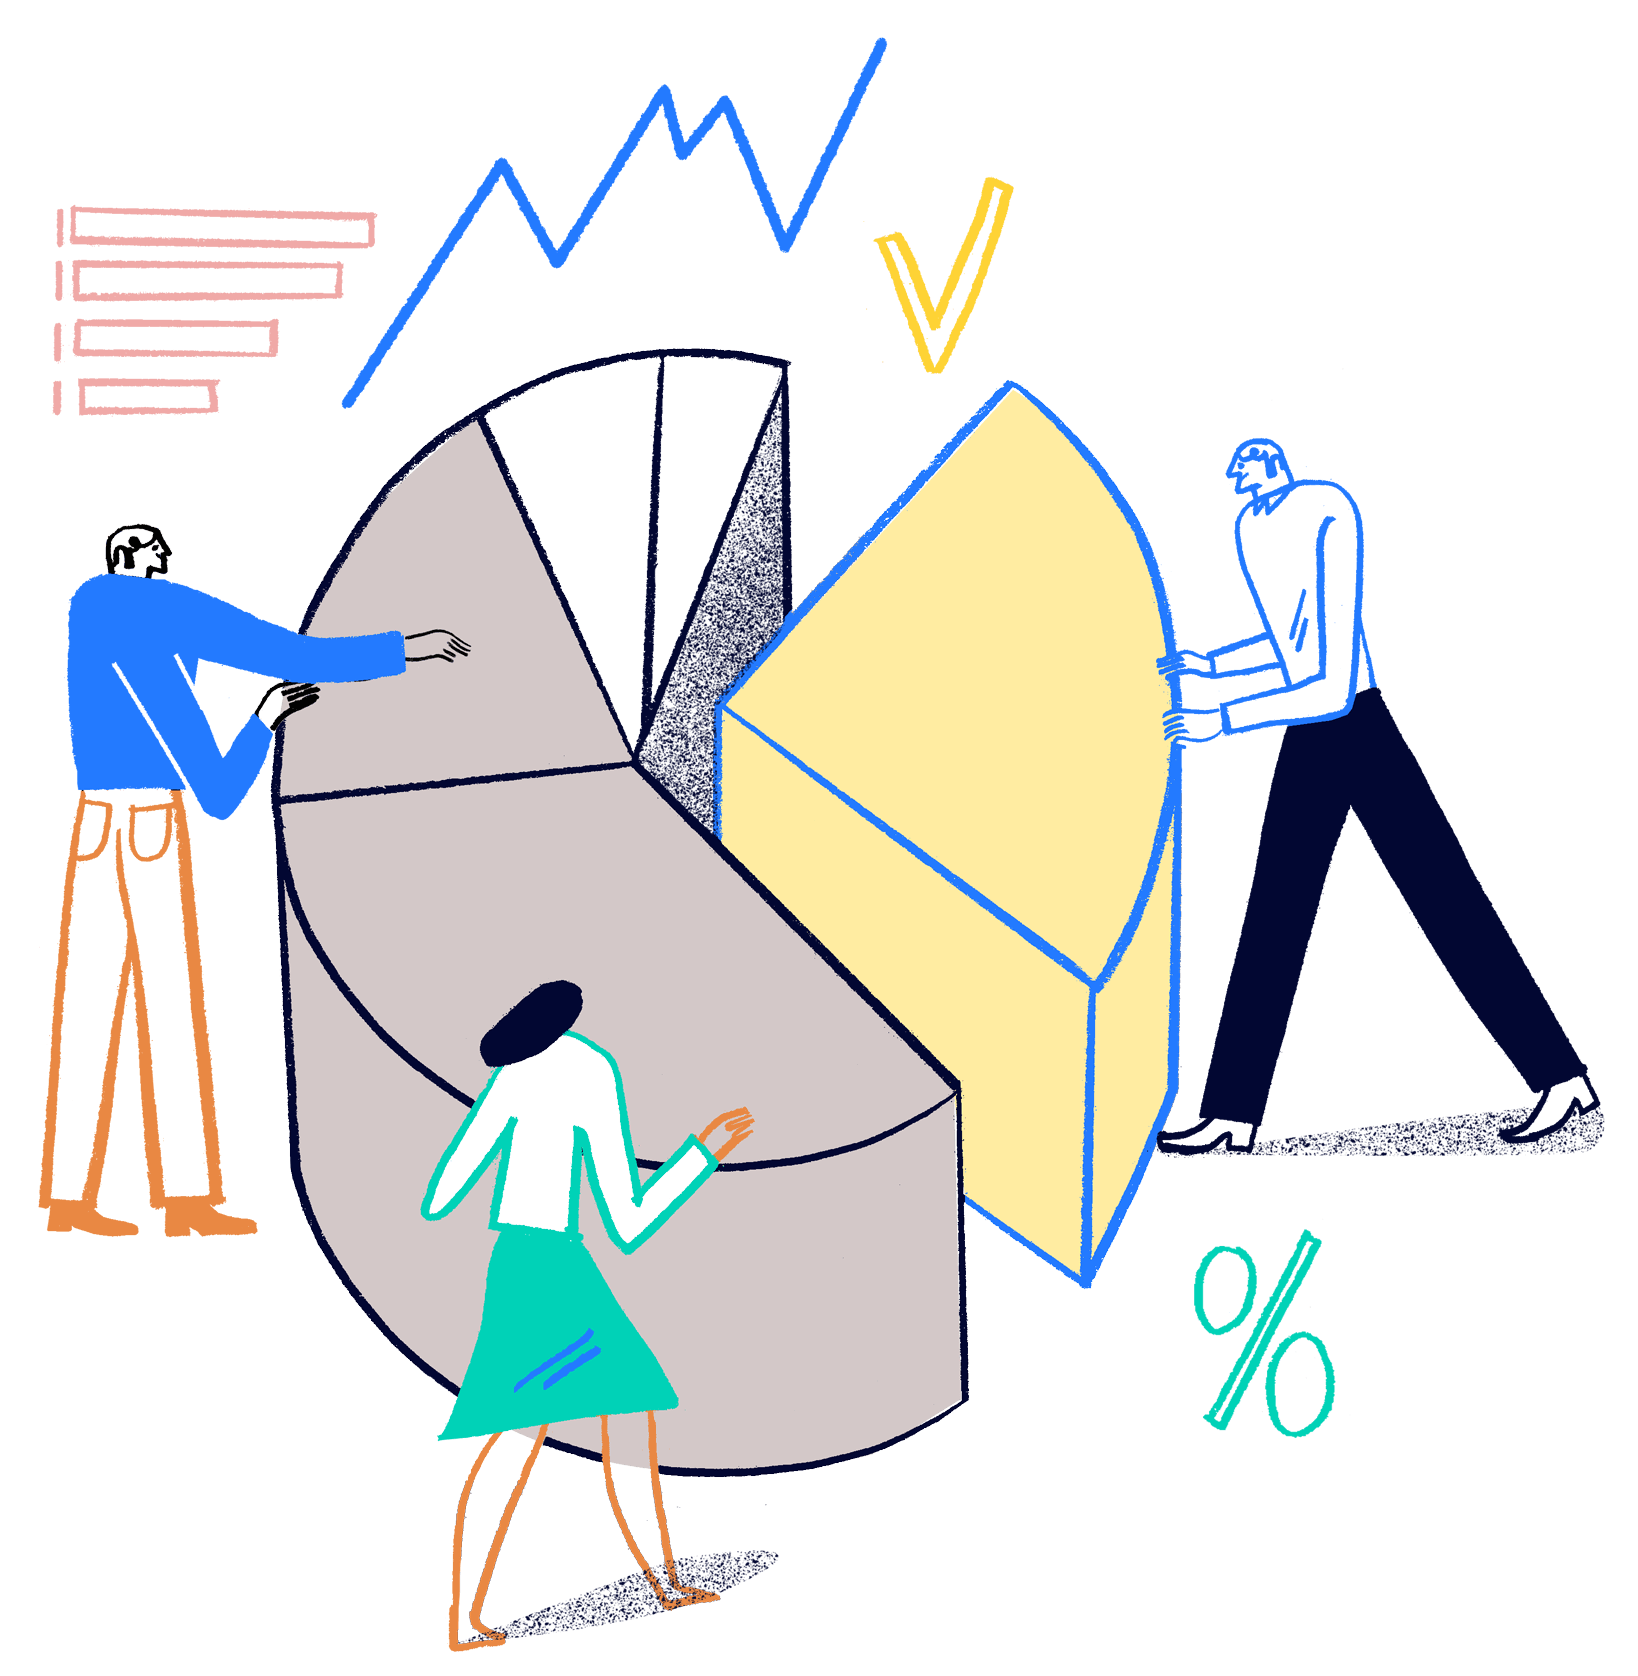 Illustration of 3 people taking pieces of a pie chart, surrounded by data